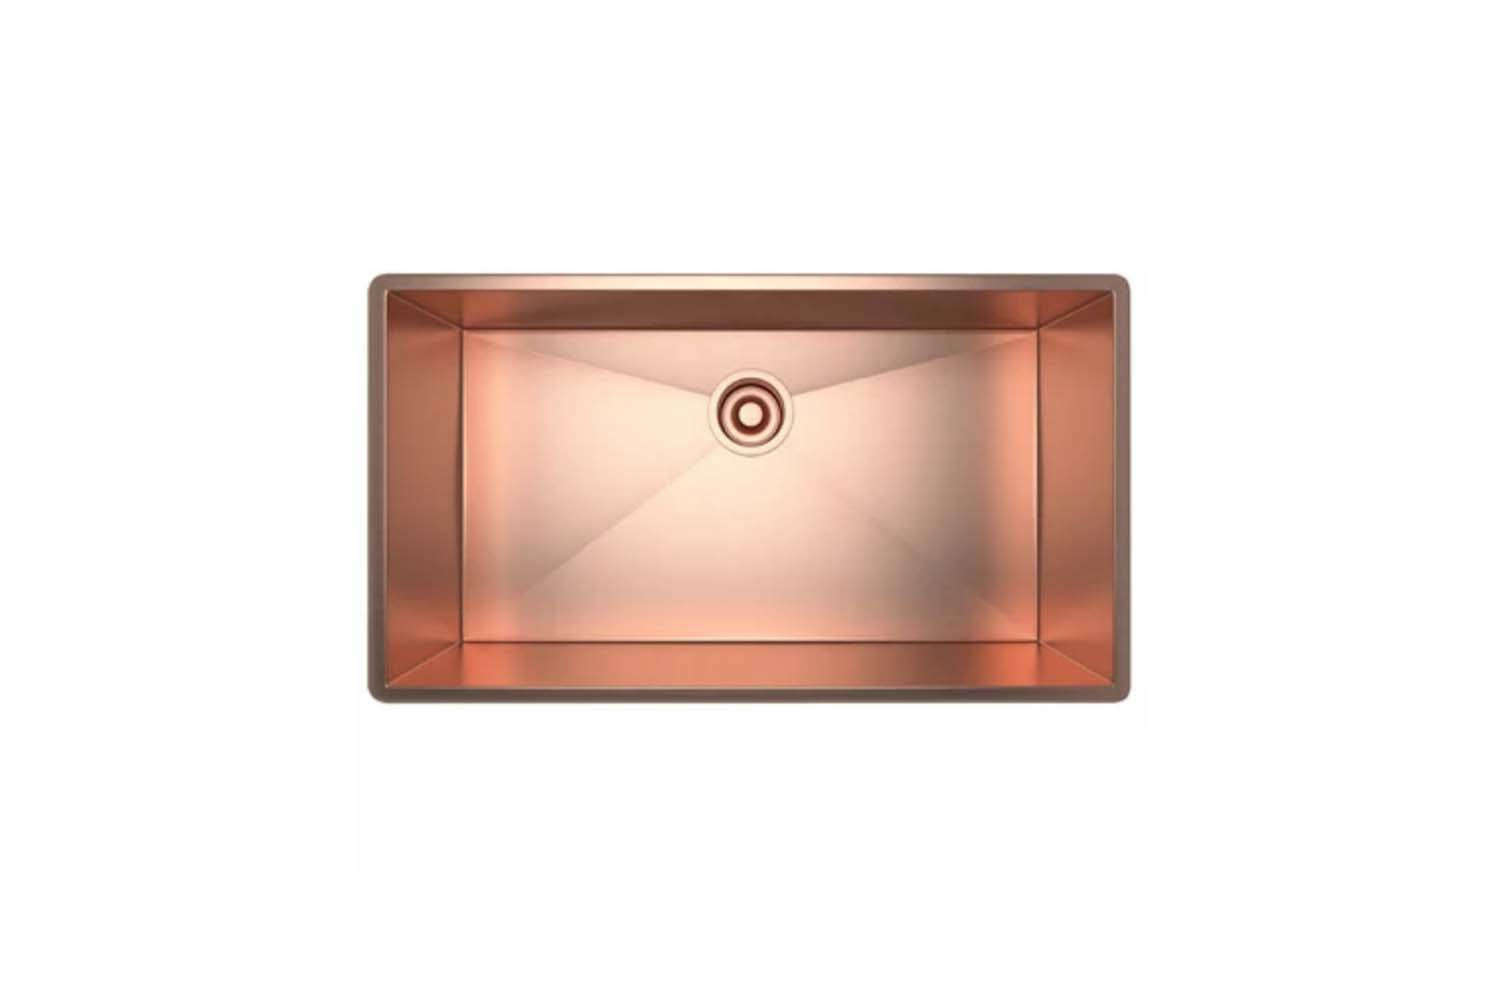 The Rohl Stainless Copper Single Basin Kitchen Sink is 30 inches long; $